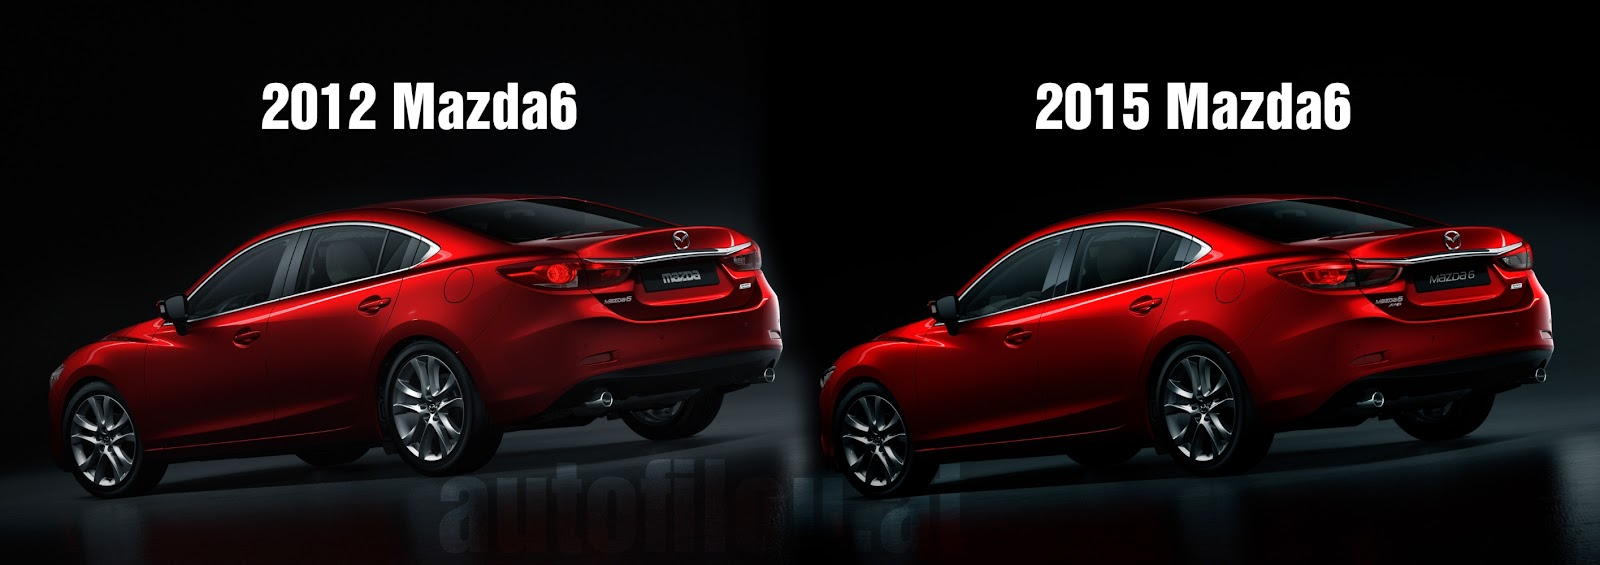 2014 Mazda 6 Compared To 2015 Mazda 6 | 2017 - 2018 Best Cars Reviews